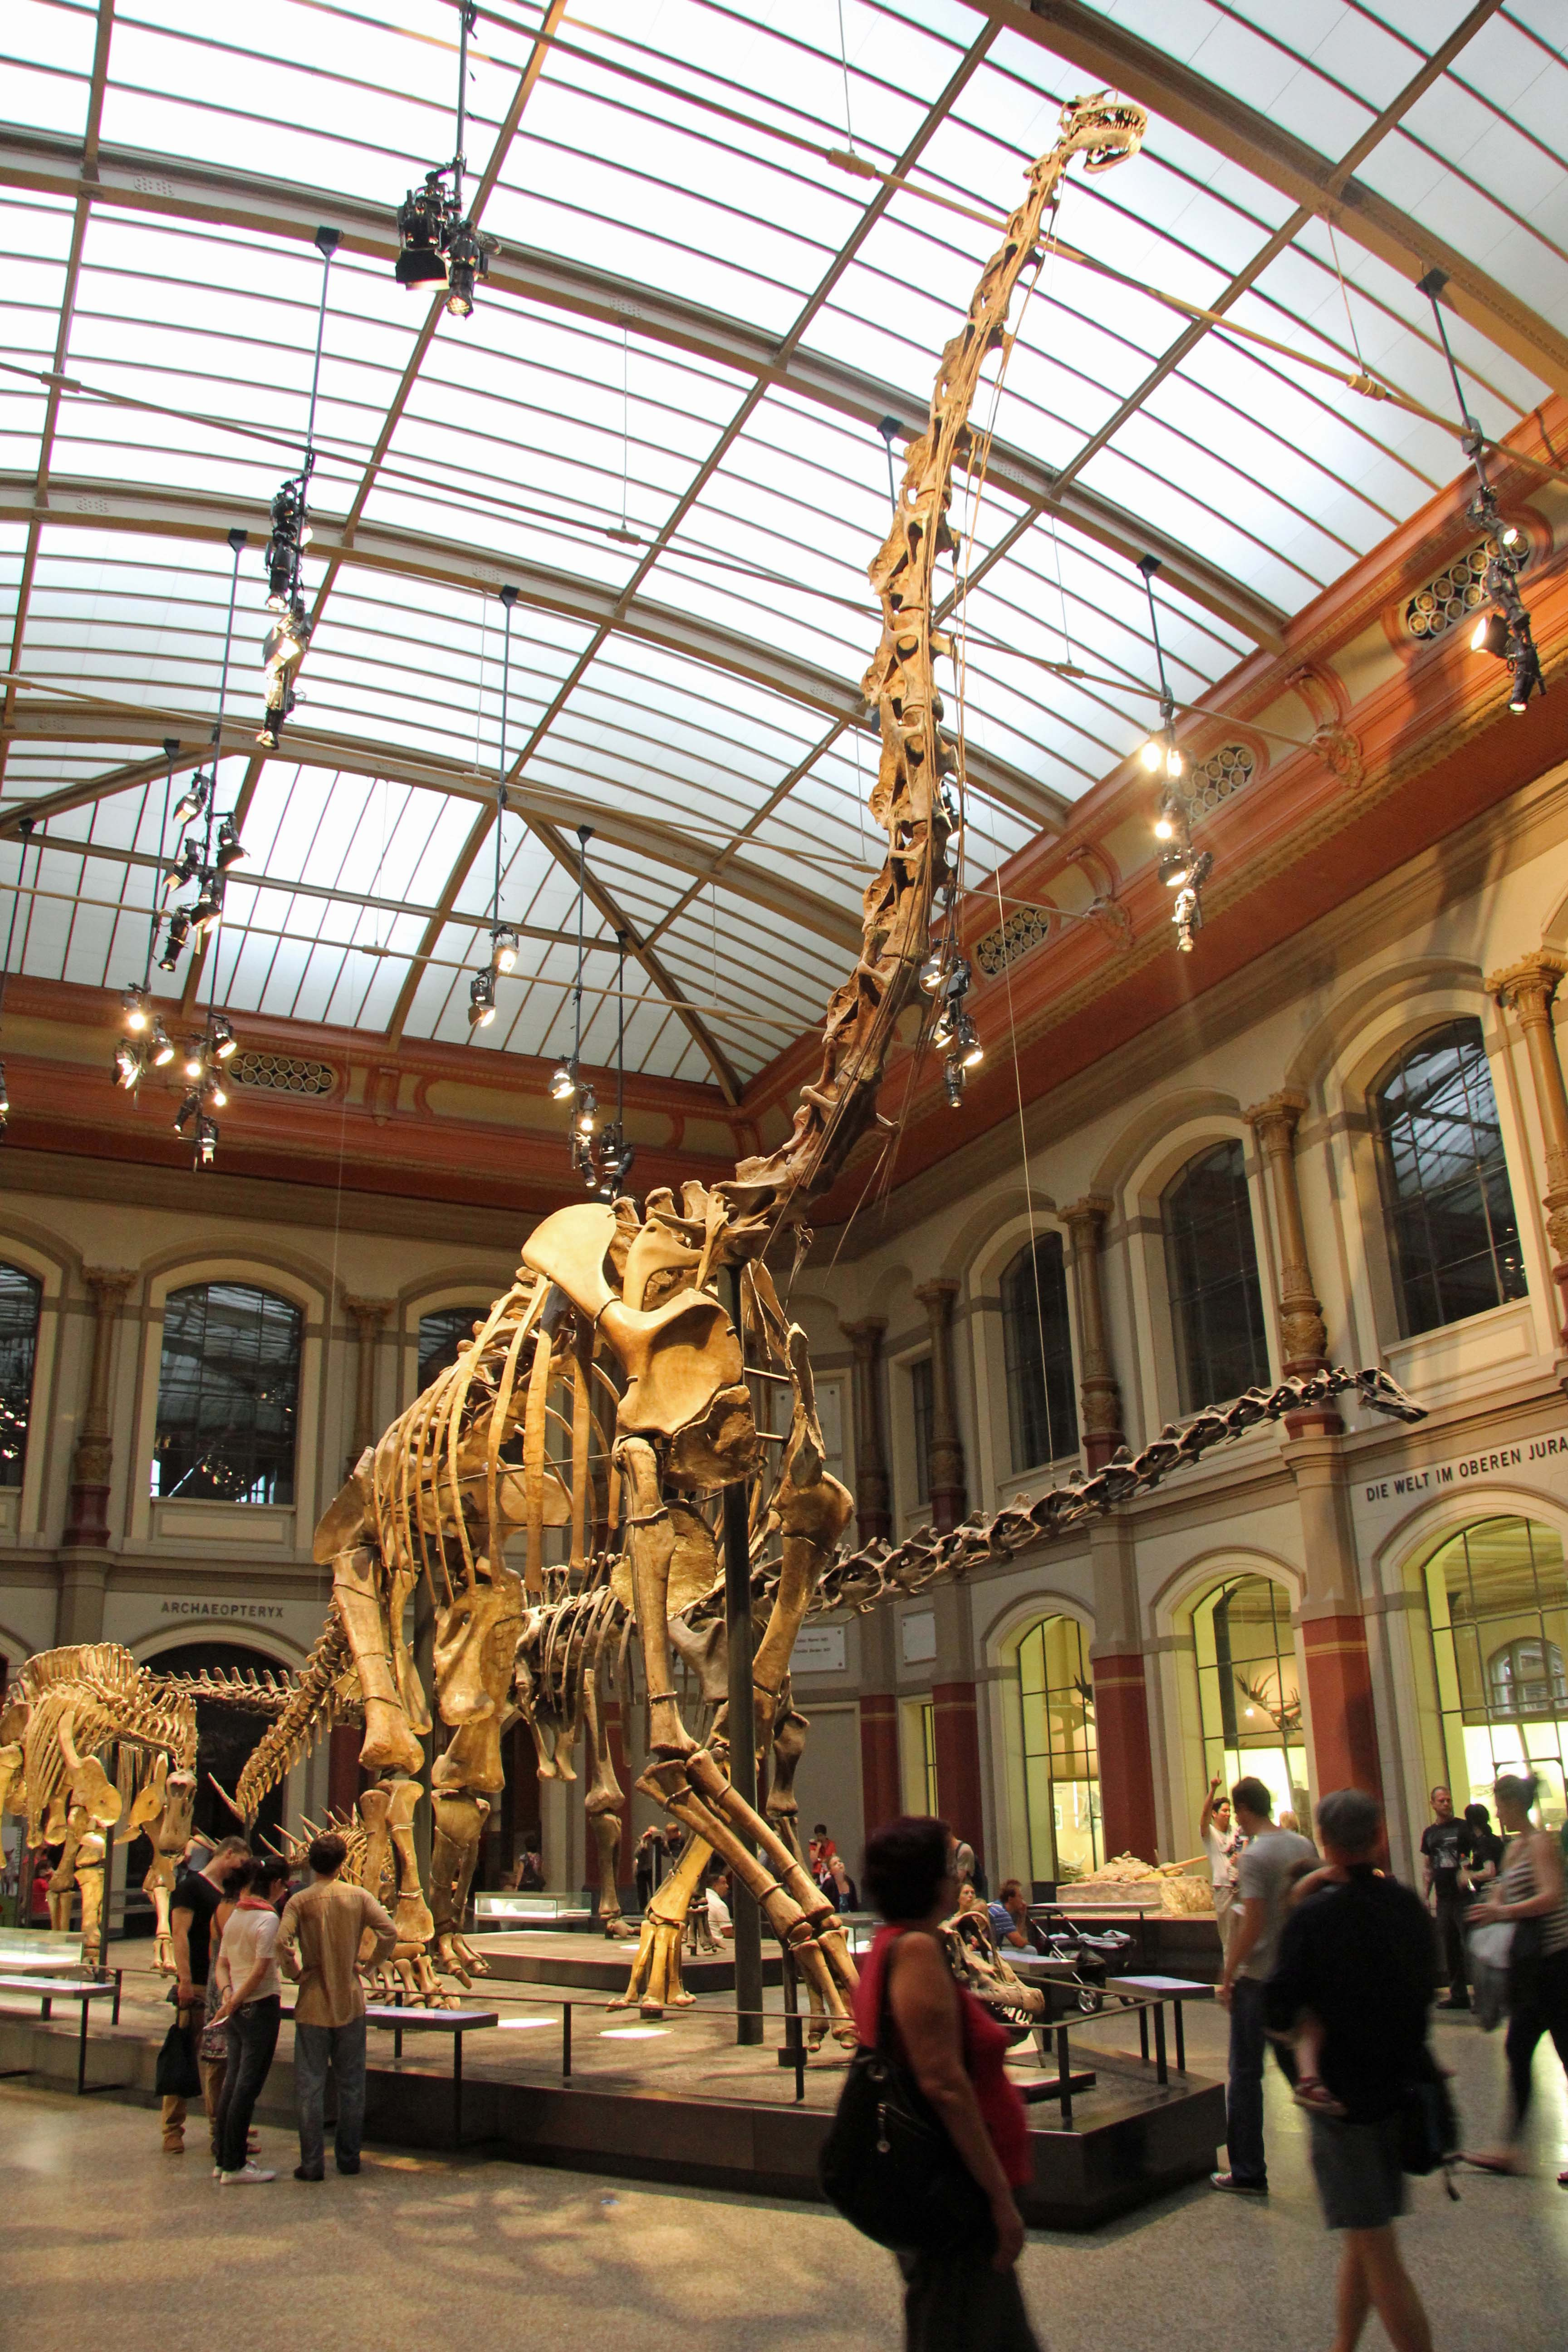 A Brachiosaurus skeleton in the World of Dinosaurs exhibition at the Museum für Naturkunde (Natural History Museum) in Berlin